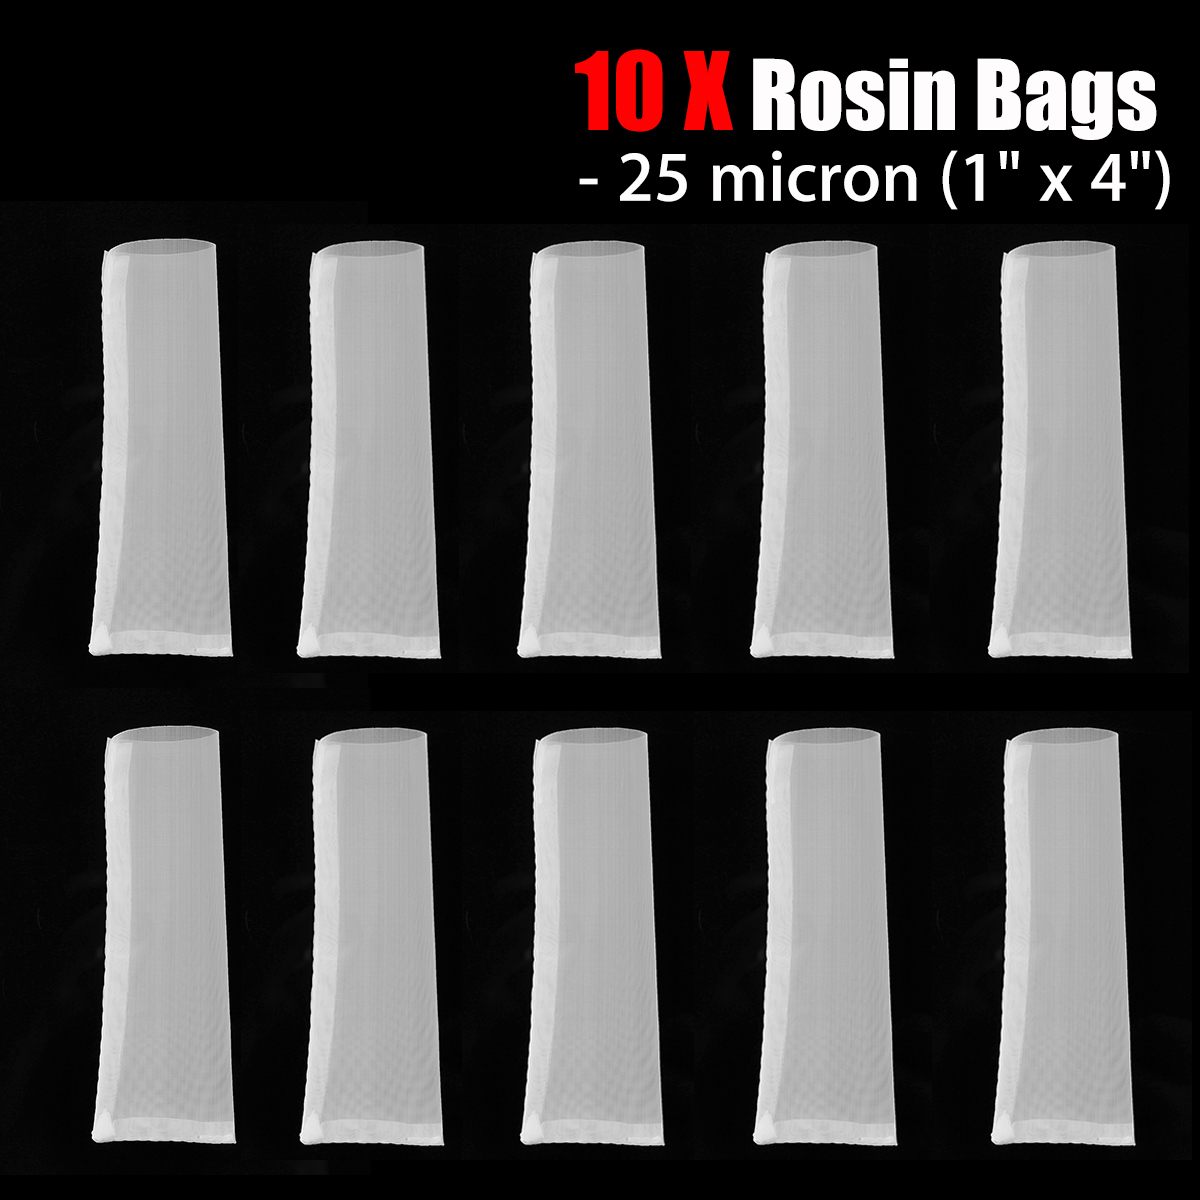 25 Micron, 25 u Filter Bags 2 x 4.5 Rosin Extraction Micron